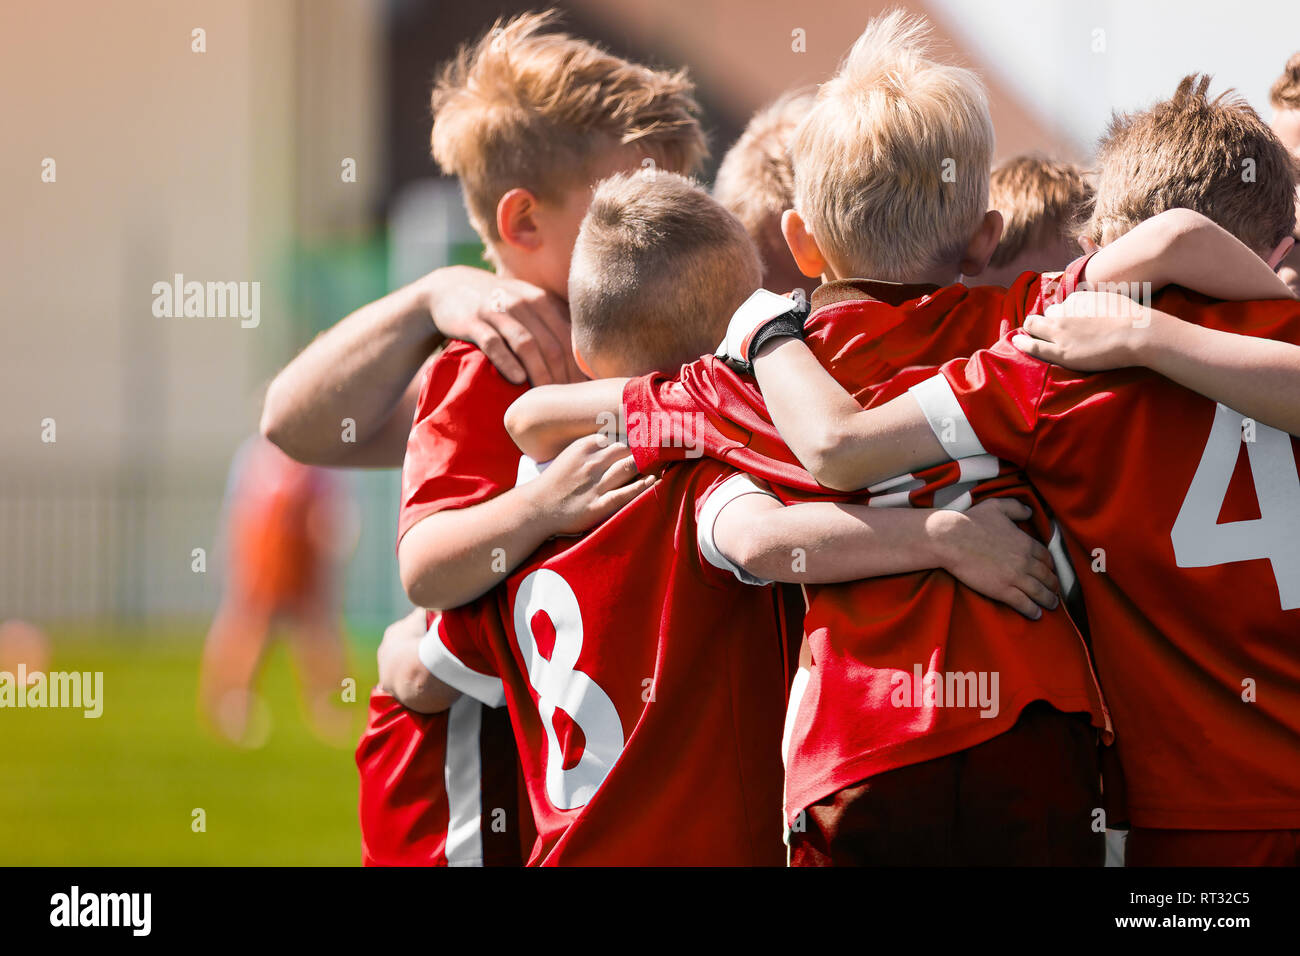 Kids Play Sports Game. Children Sporty Team United Ready to Play Game. Children Team Sport. Youth Sports For Children. Boys in Sports Jersey Red Shirt - Stock Image